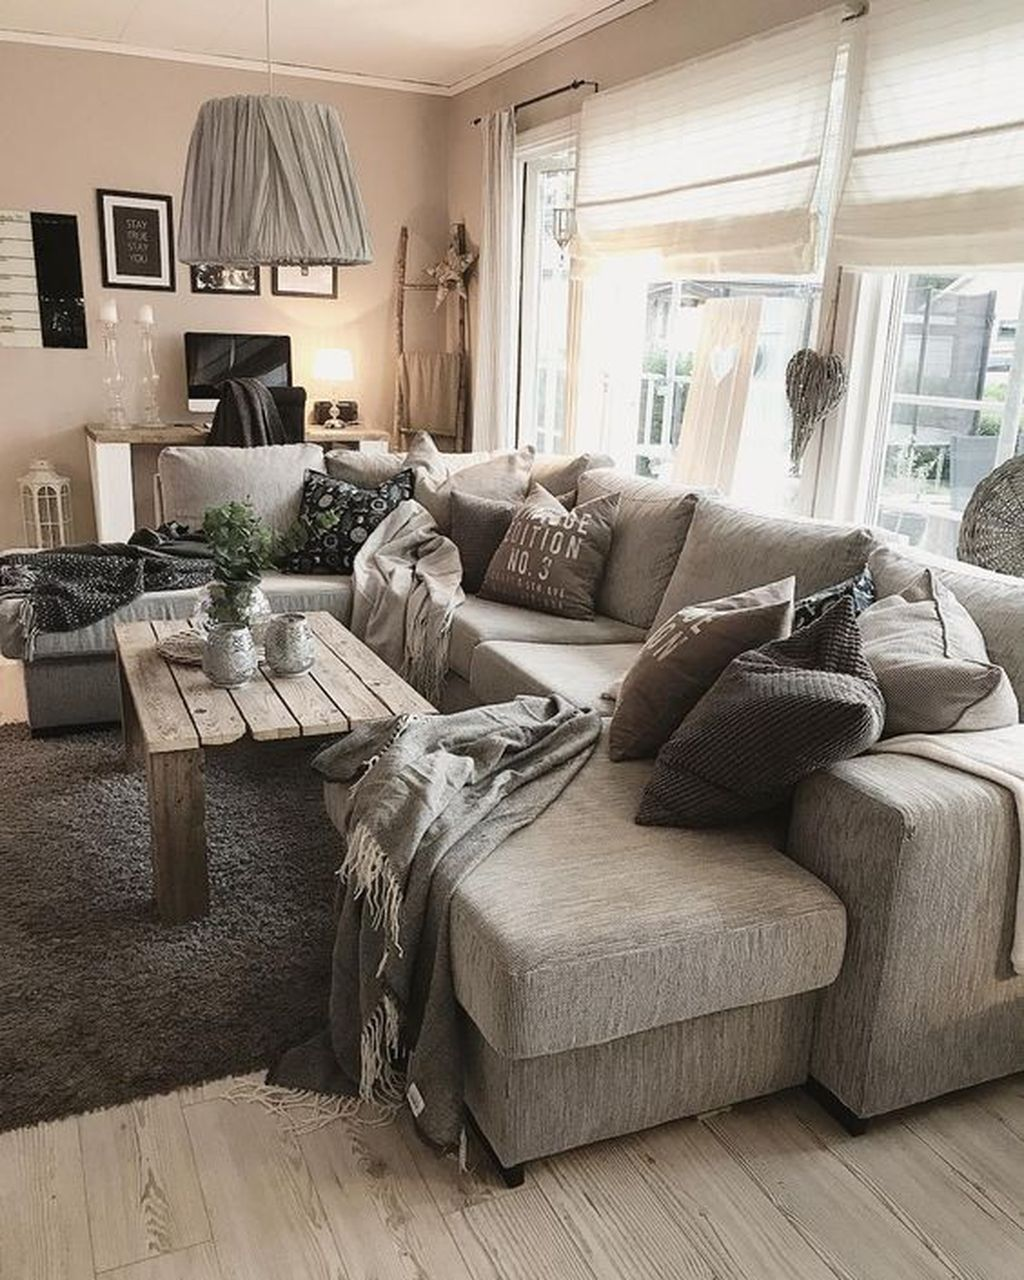 50 Awesome Winter Simple Living Room Decor Ideas You Must Try images